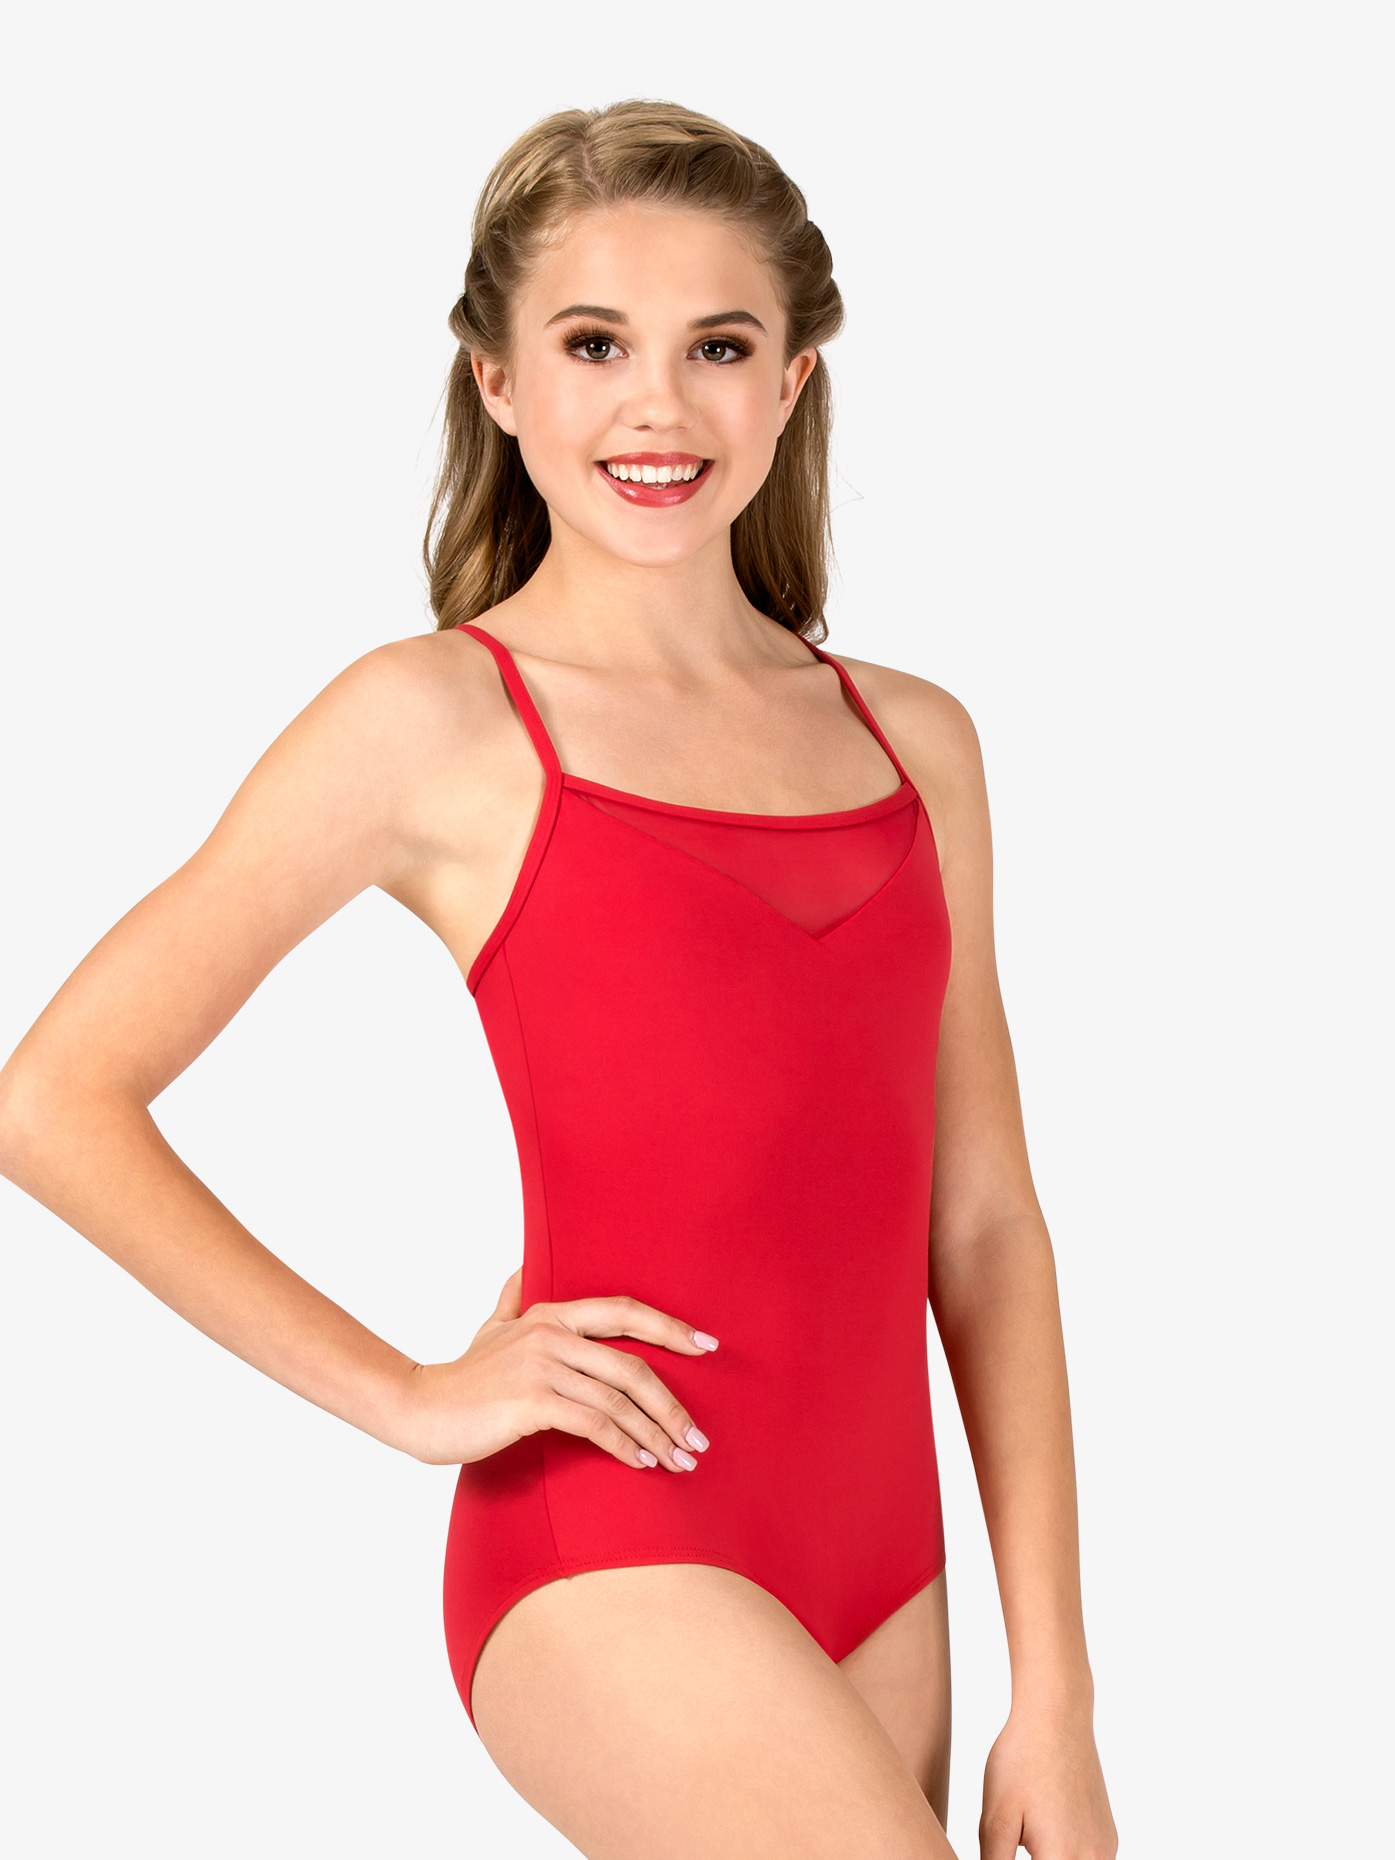 Natalie Couture Womens V-Front Mesh Insert Camisole Leotard P882